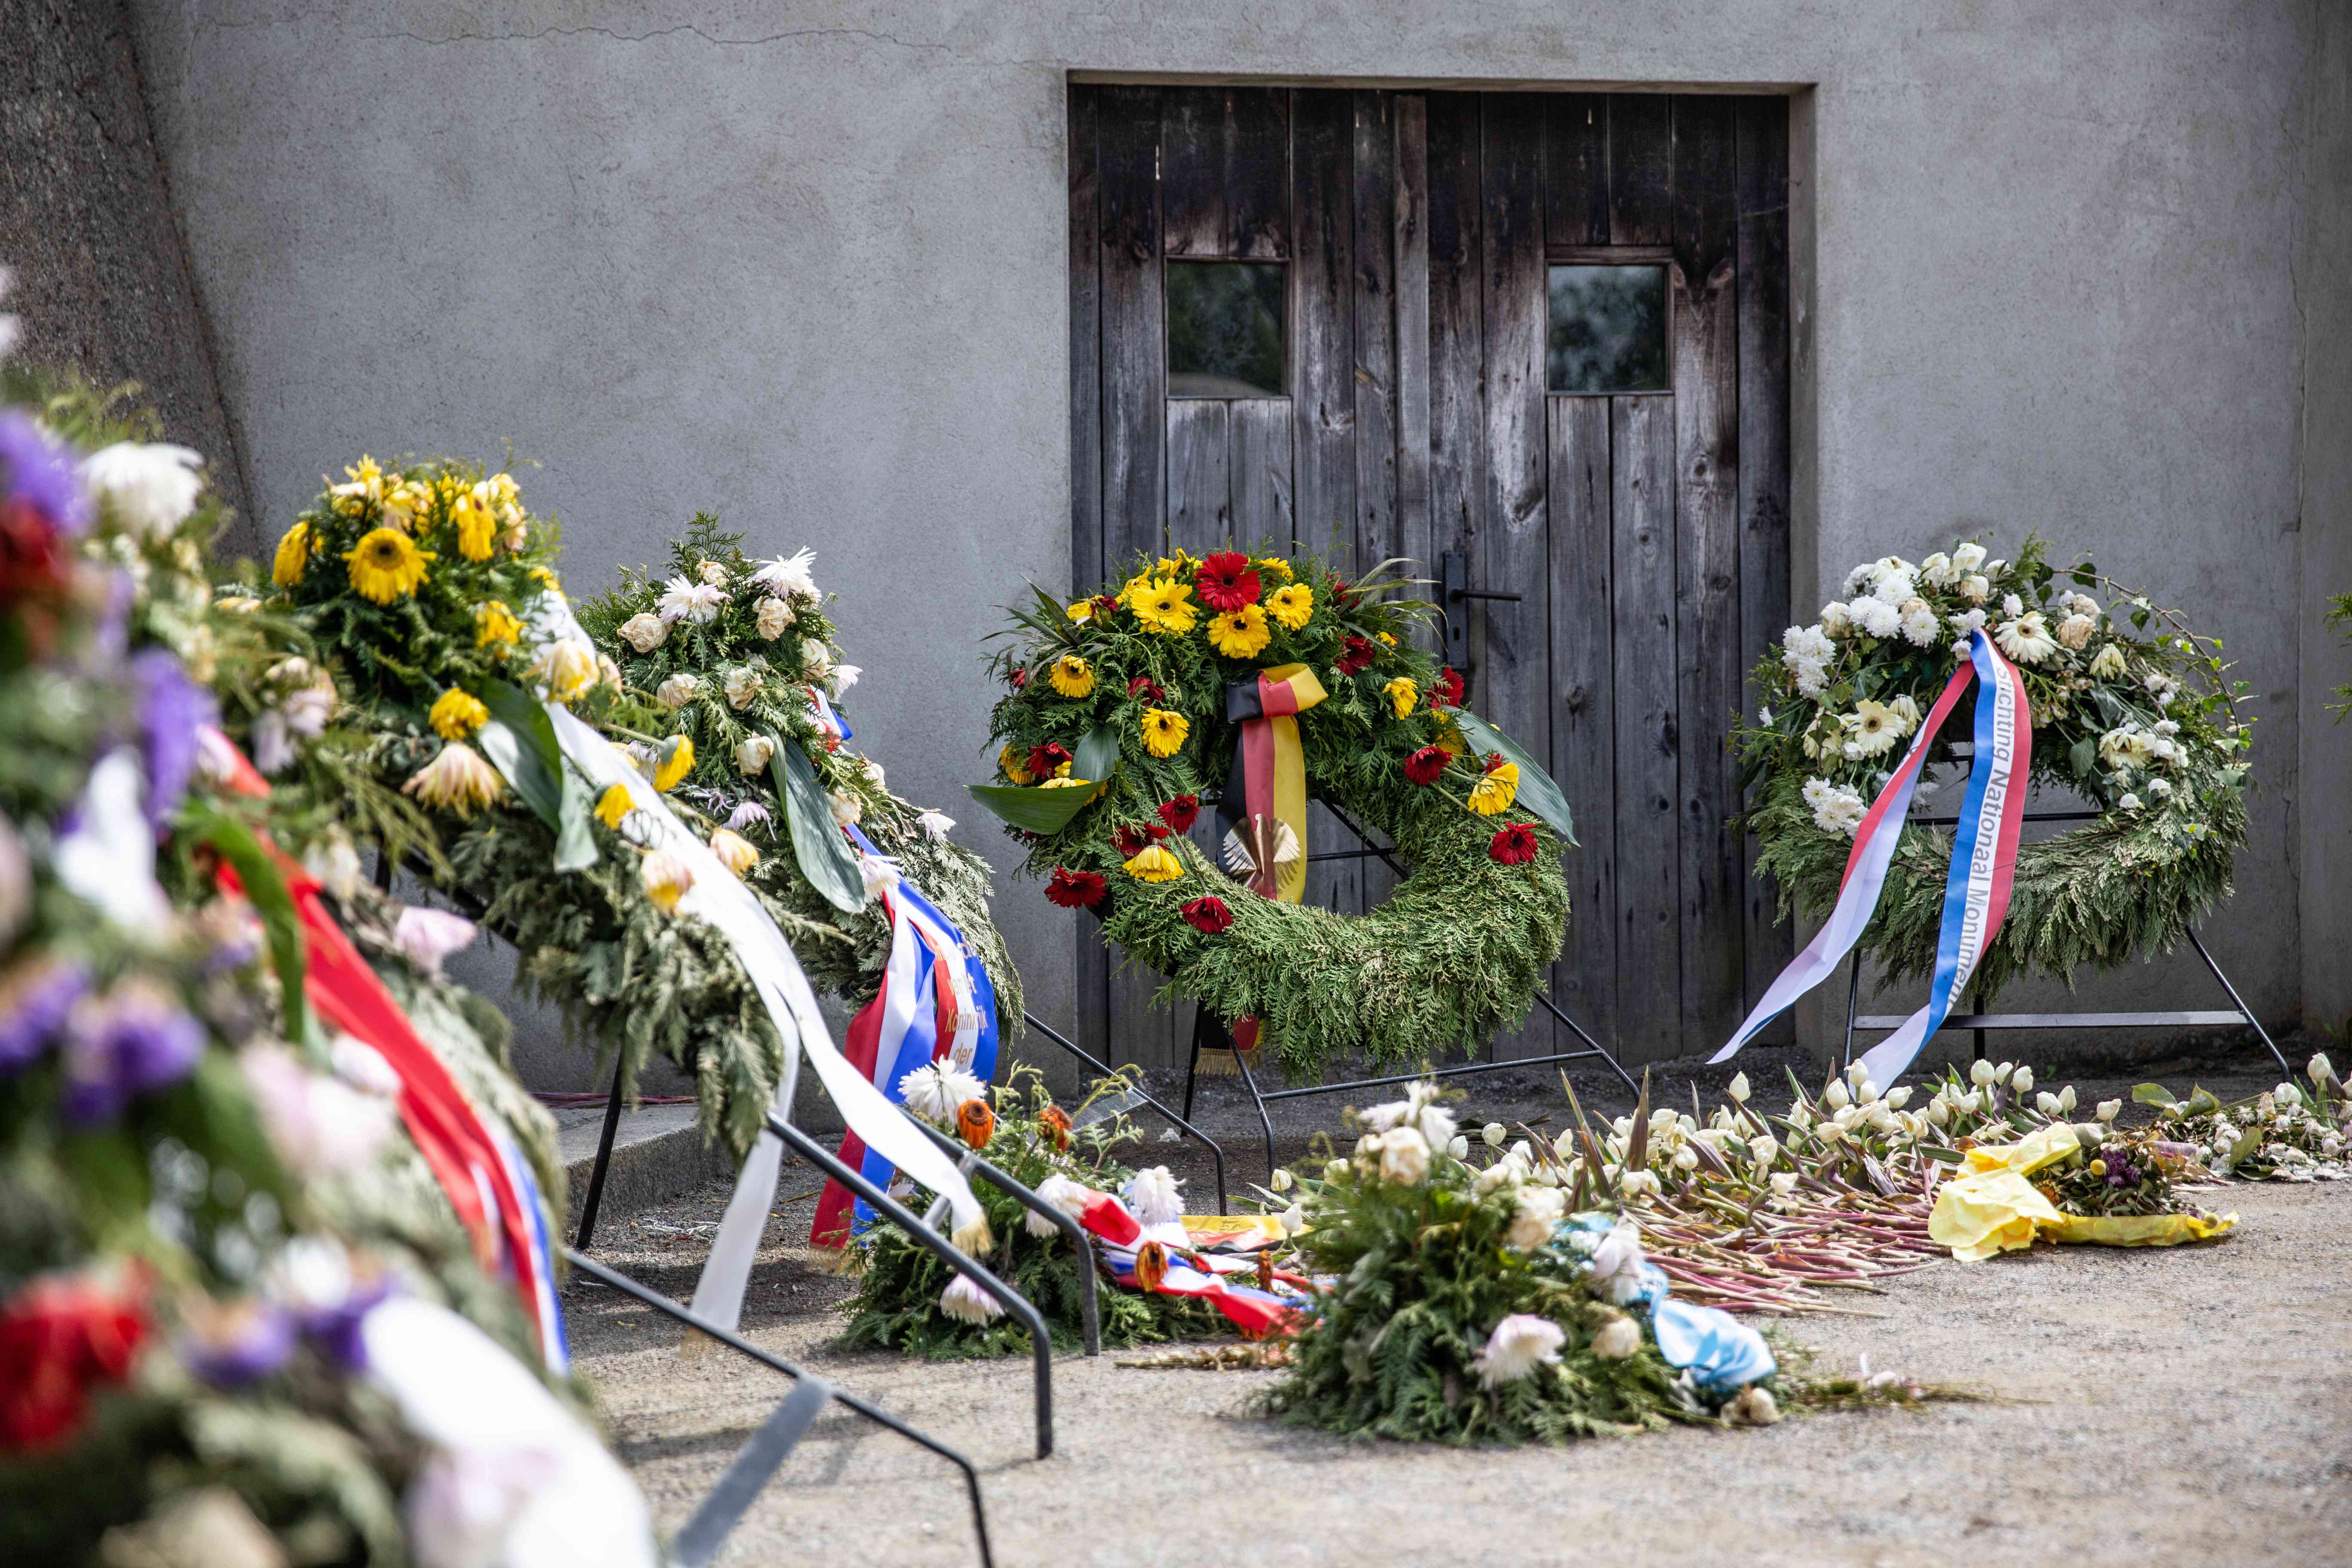 Flowers at Sachsenhausen Concentration Camp